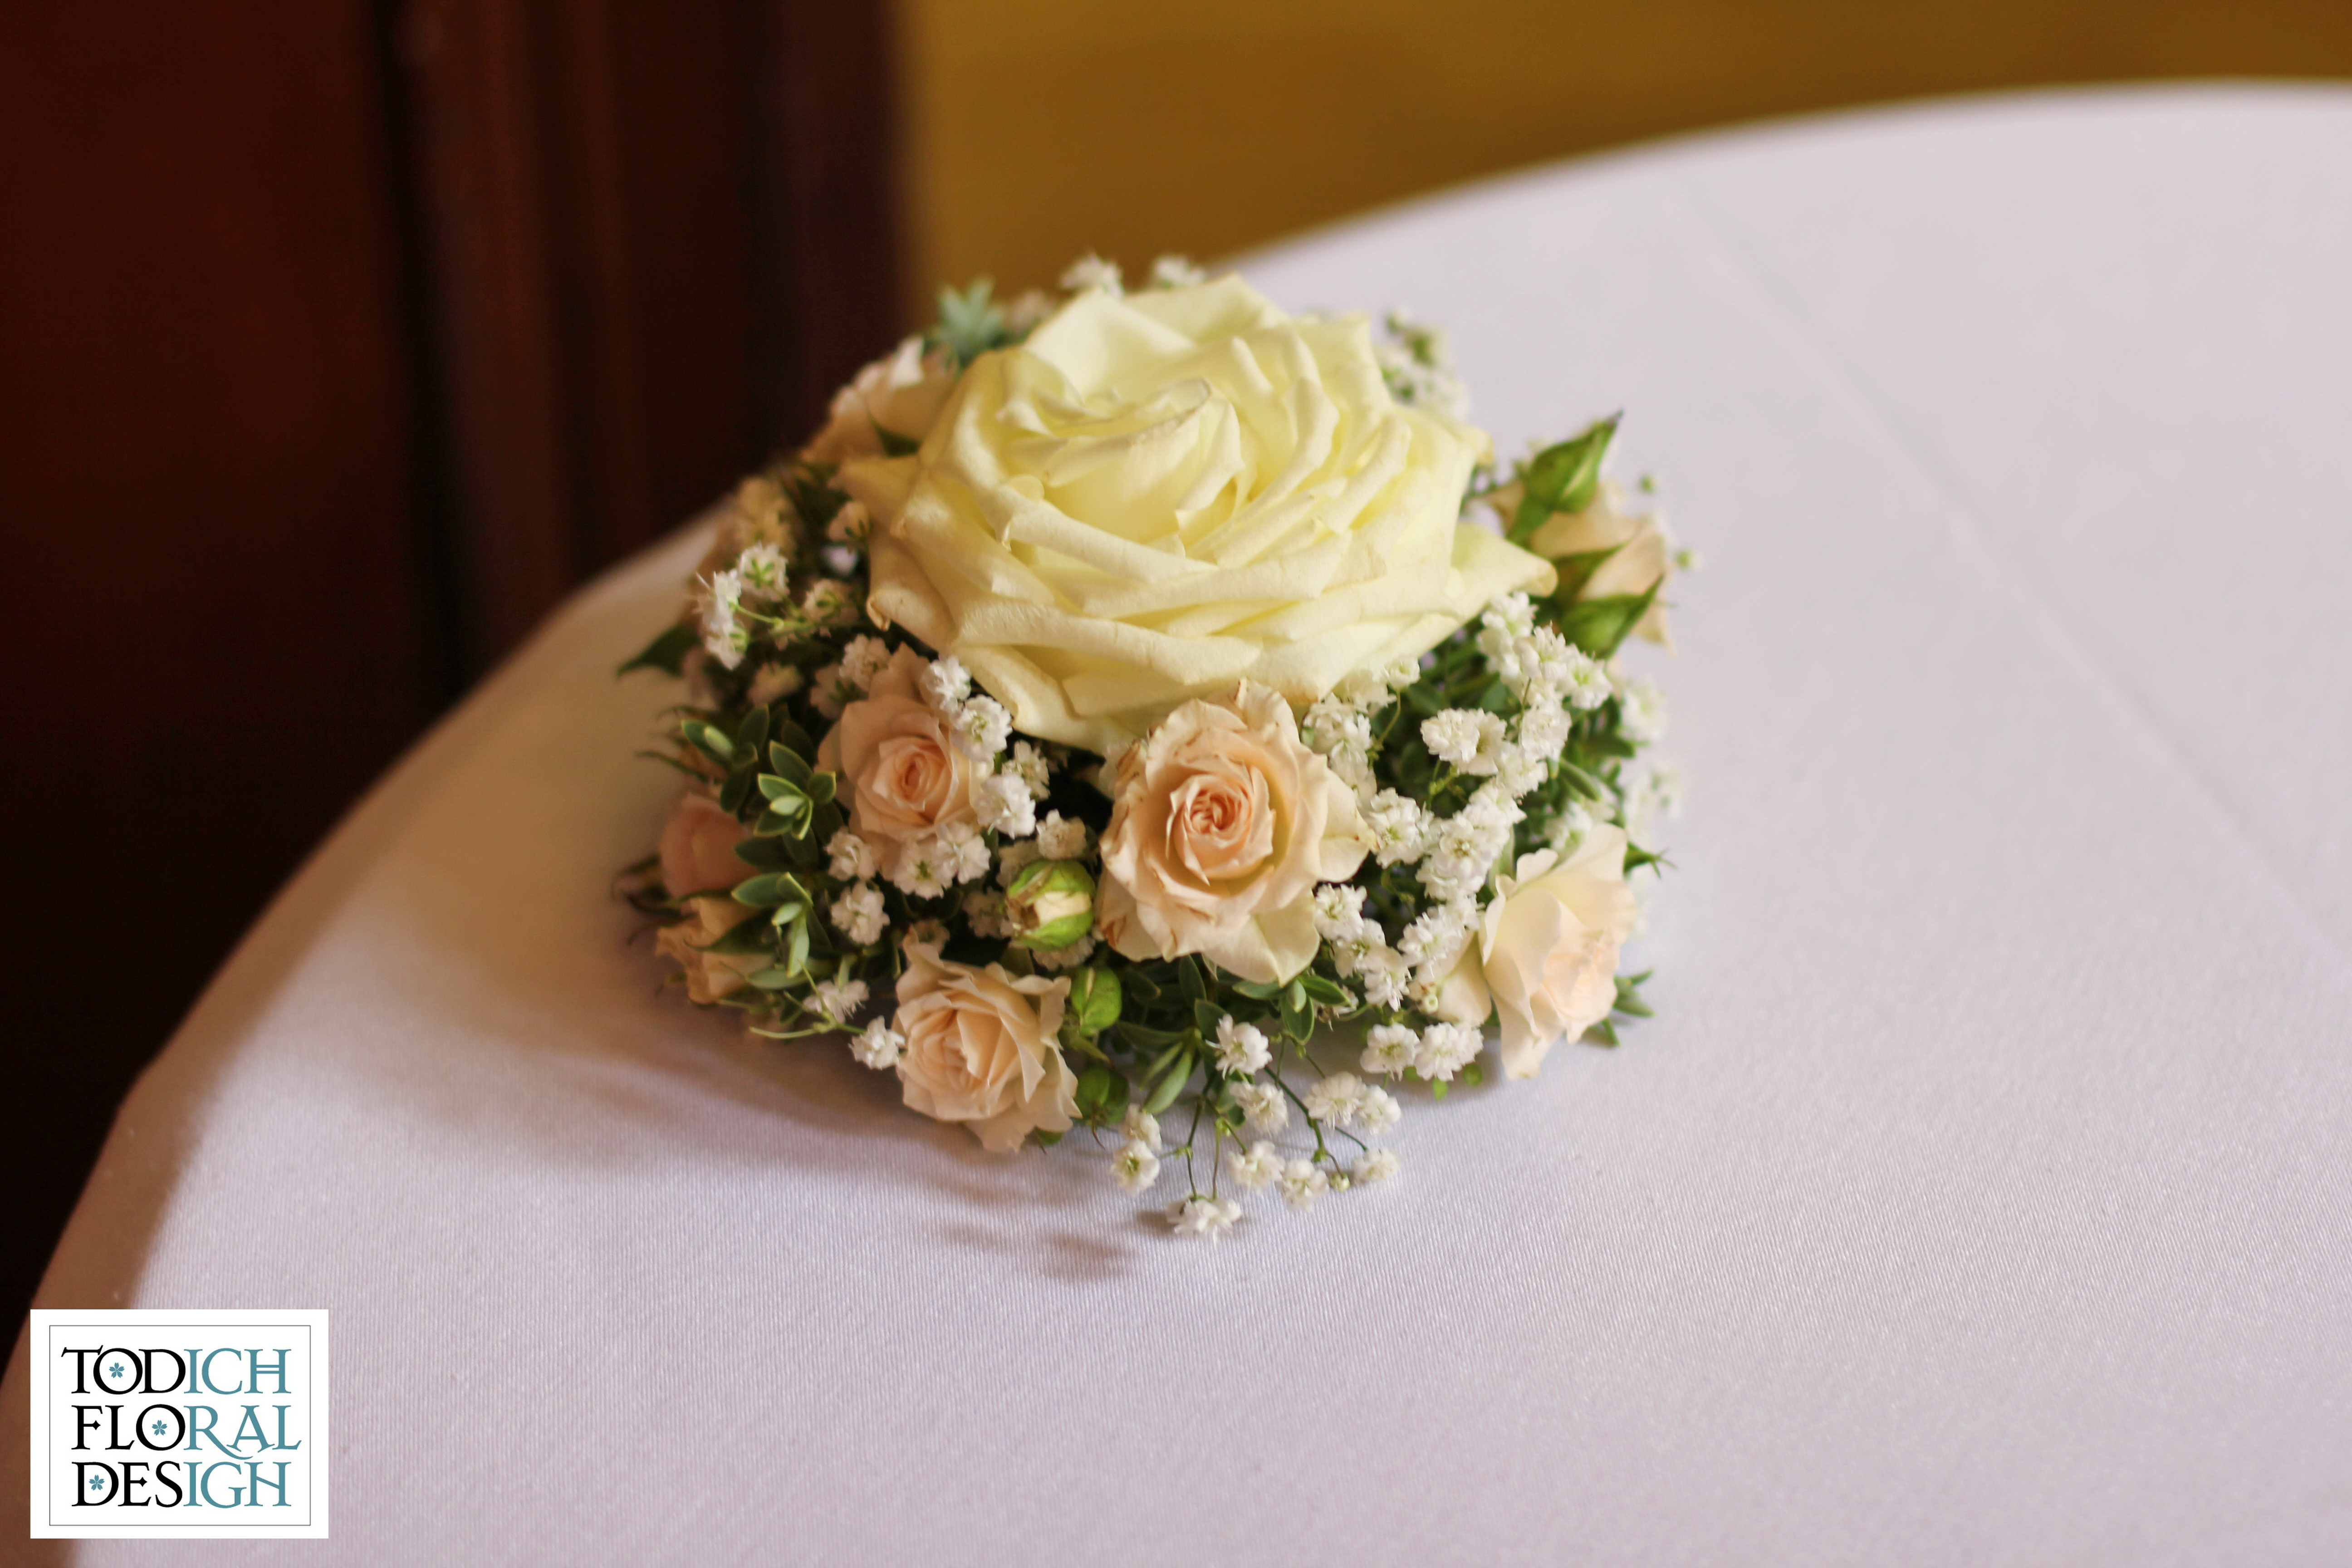 Weddings archives page 4 of 7 the same flowers were also added into the remaining low oasis arrangements reviewsmspy